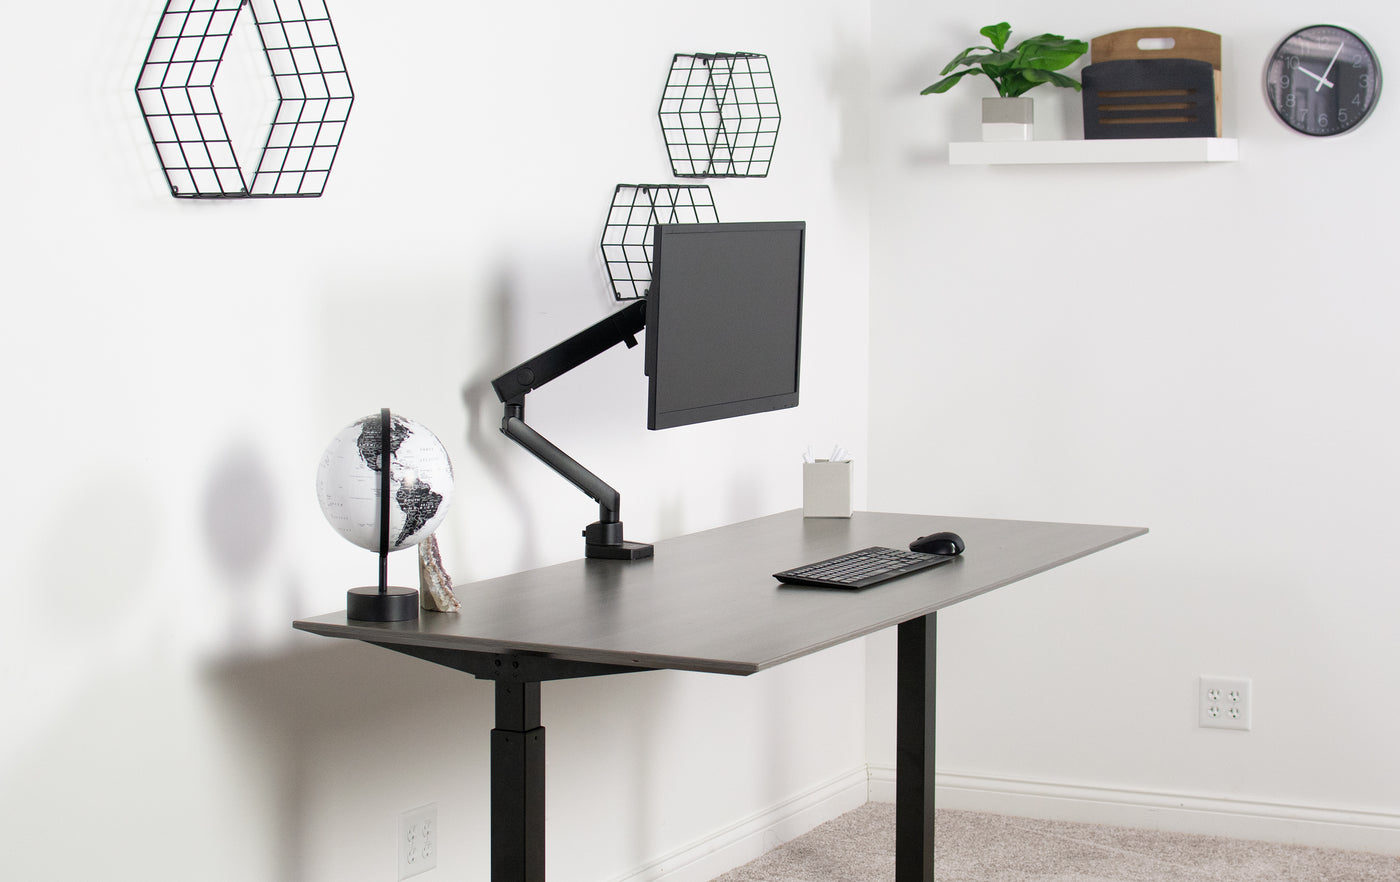 The Ultimate Beginners Guide to Designing a Desk Setup